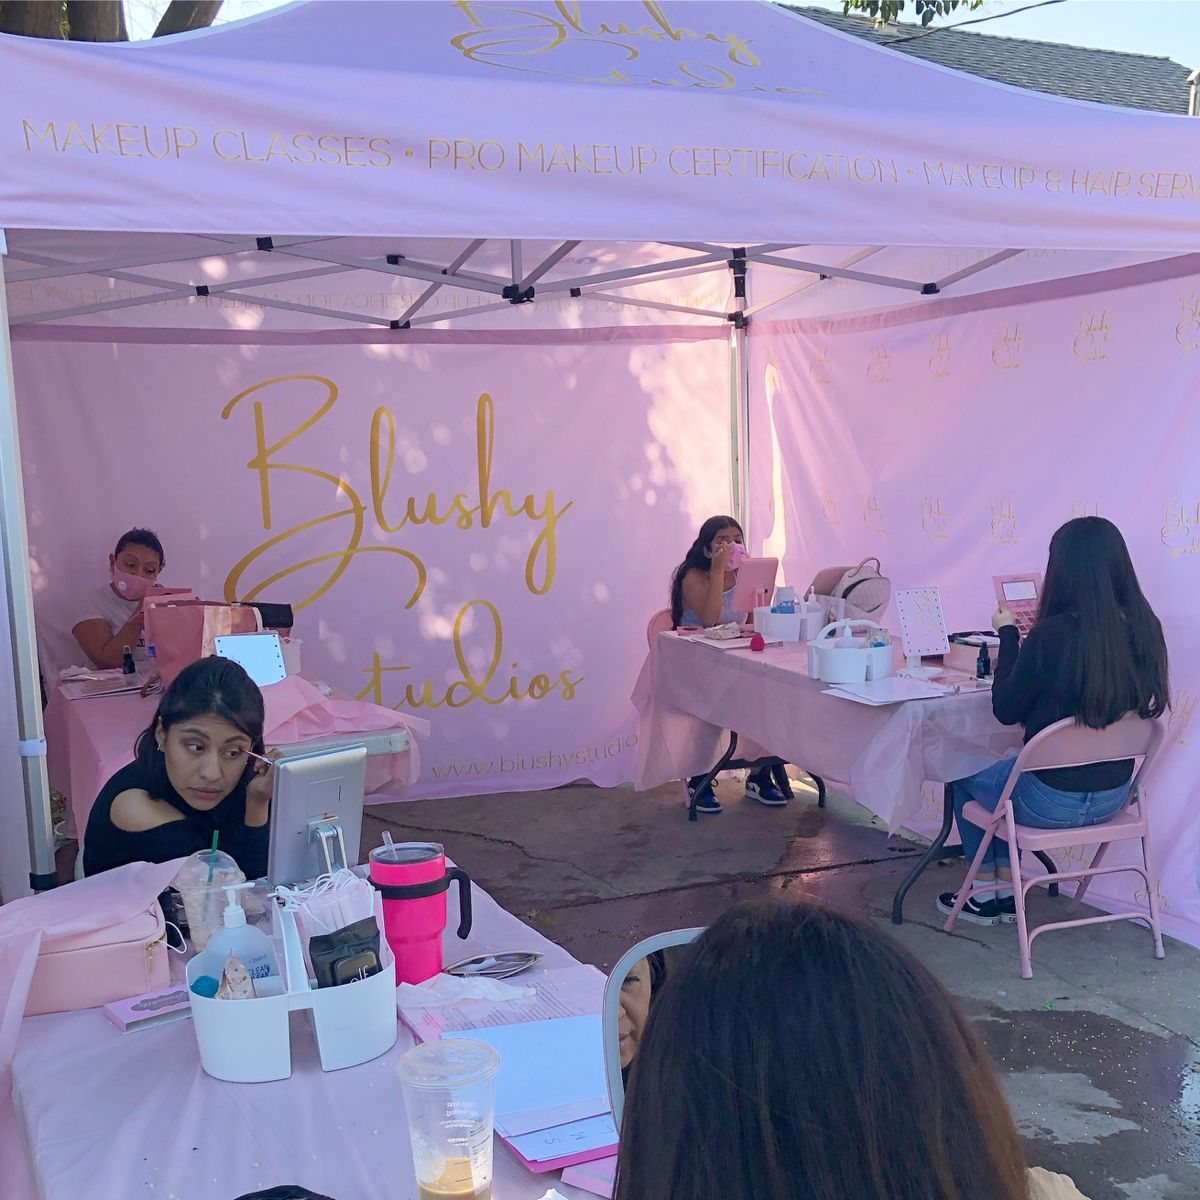 Blushy Studios Students Learning How To Do Their Own Makeup In 2020 Makeup Course Makeup Academy Student Learning